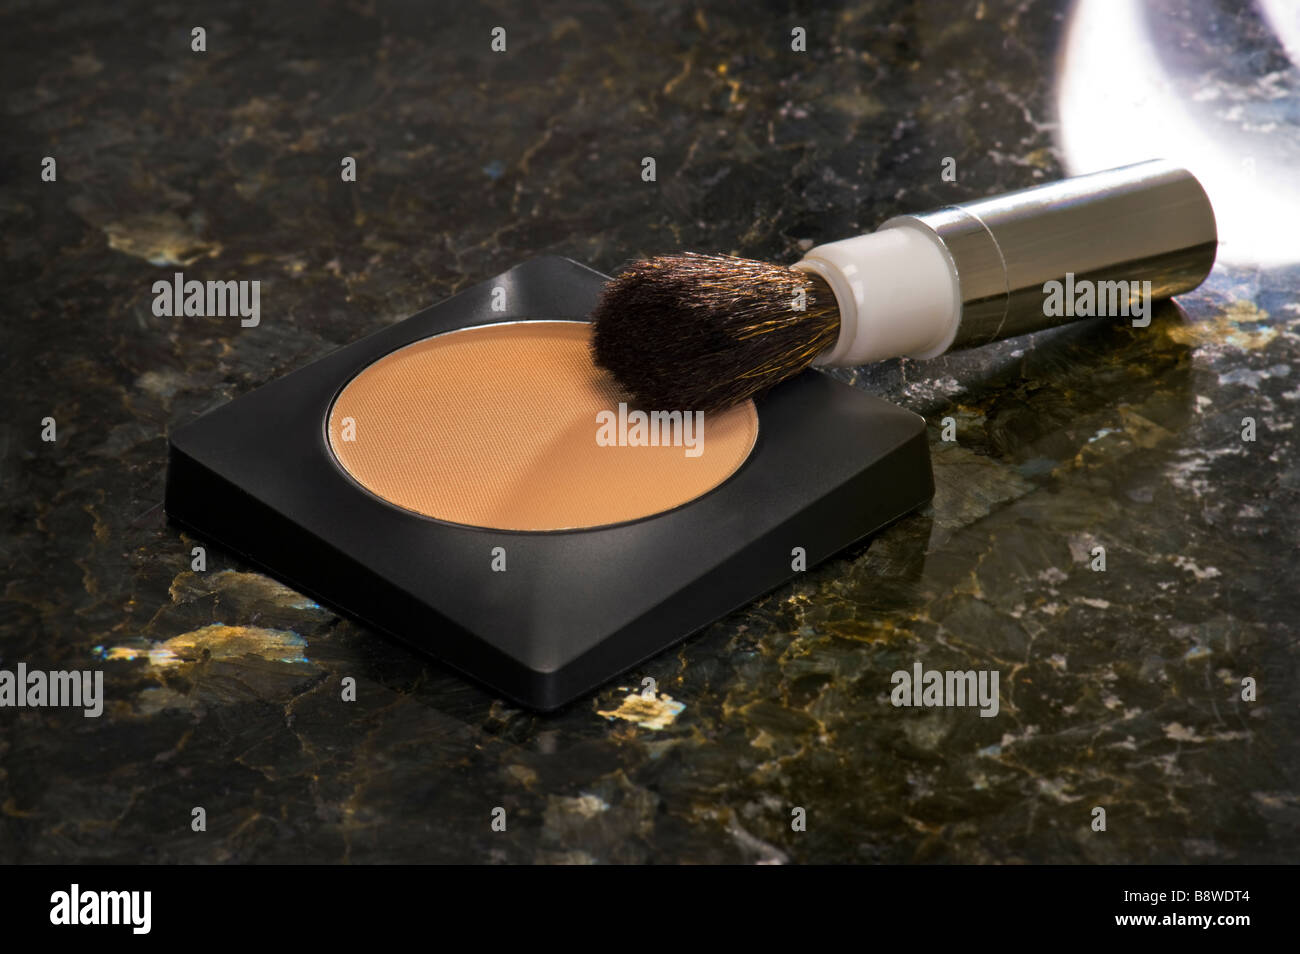 make up powder  accessory accessories paint painting and brush make oneself up paintbrush nice symbol symbolic vinta - Stock Image